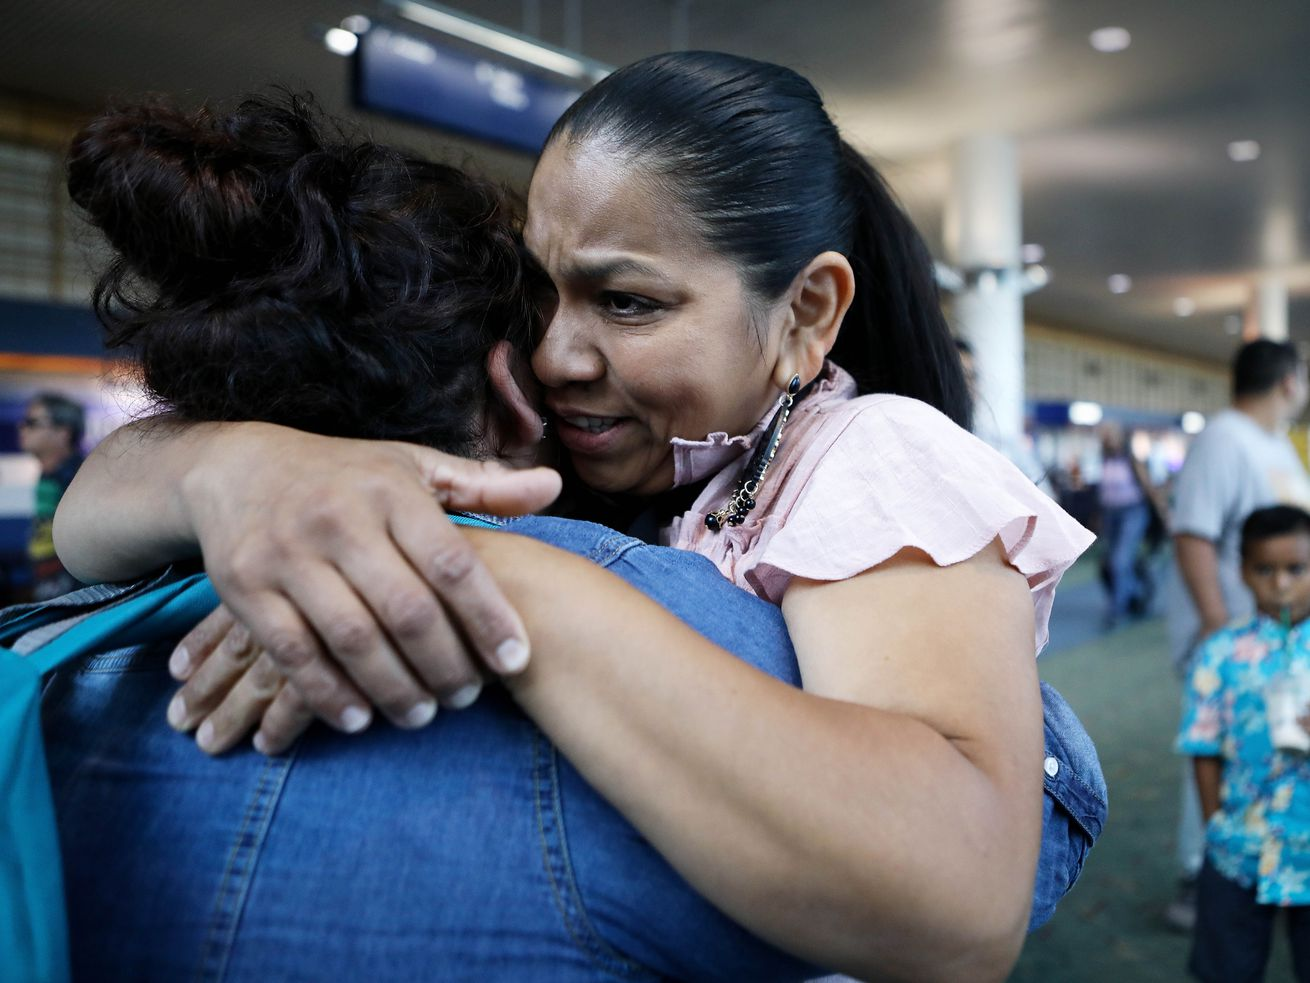 While some immigrants are able to reunite with their families in the US, unauthorized-immigrant relatives seeking custody of children who arrived in the US unaccompanied risk identification, arrest, and possibly deportation.